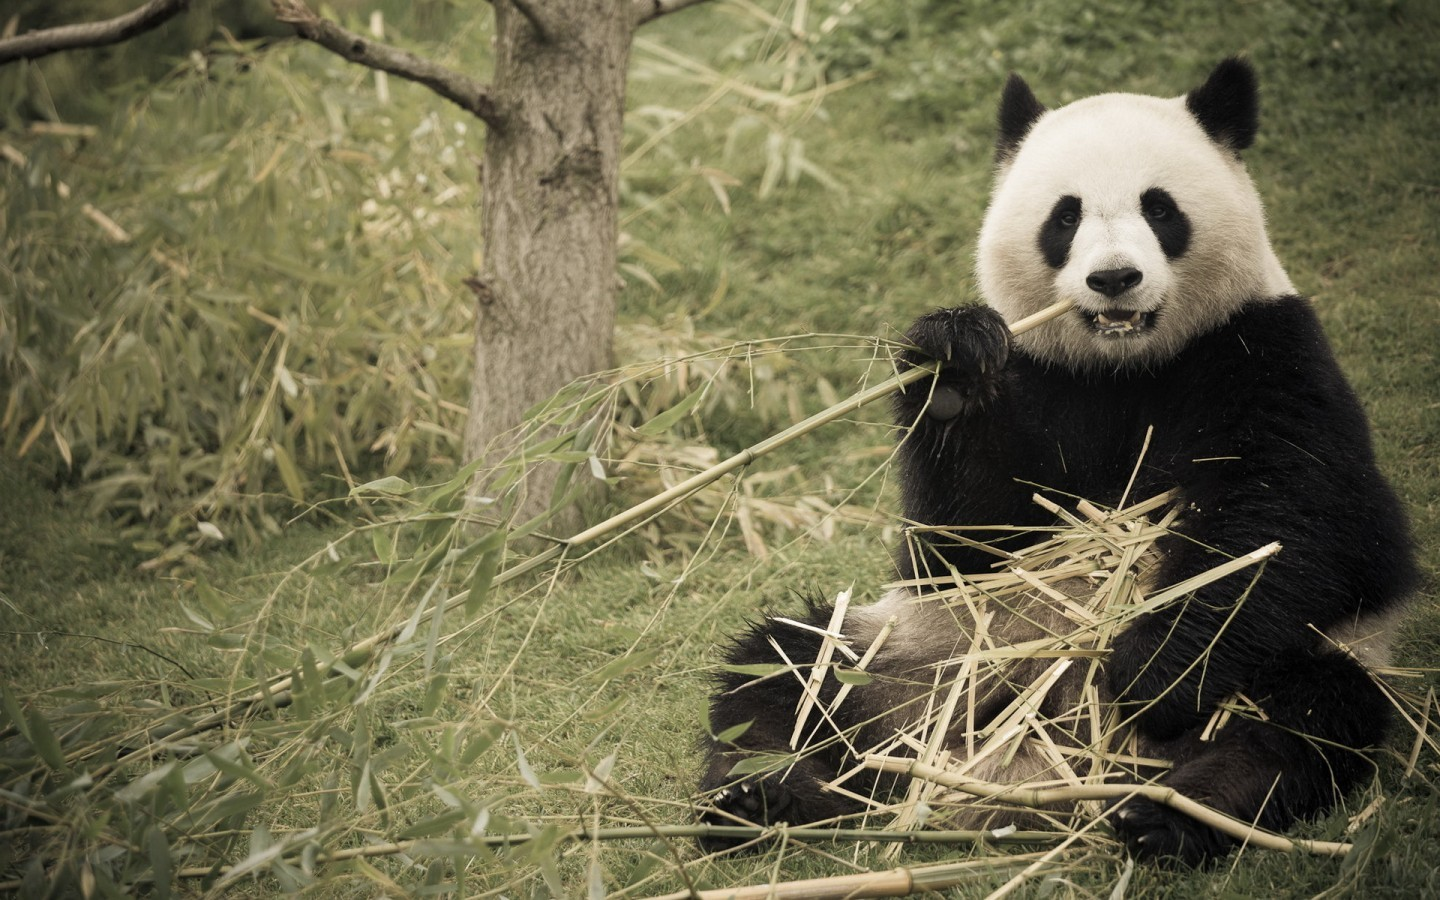 49219 download wallpaper Animals, Pandas screensavers and pictures for free